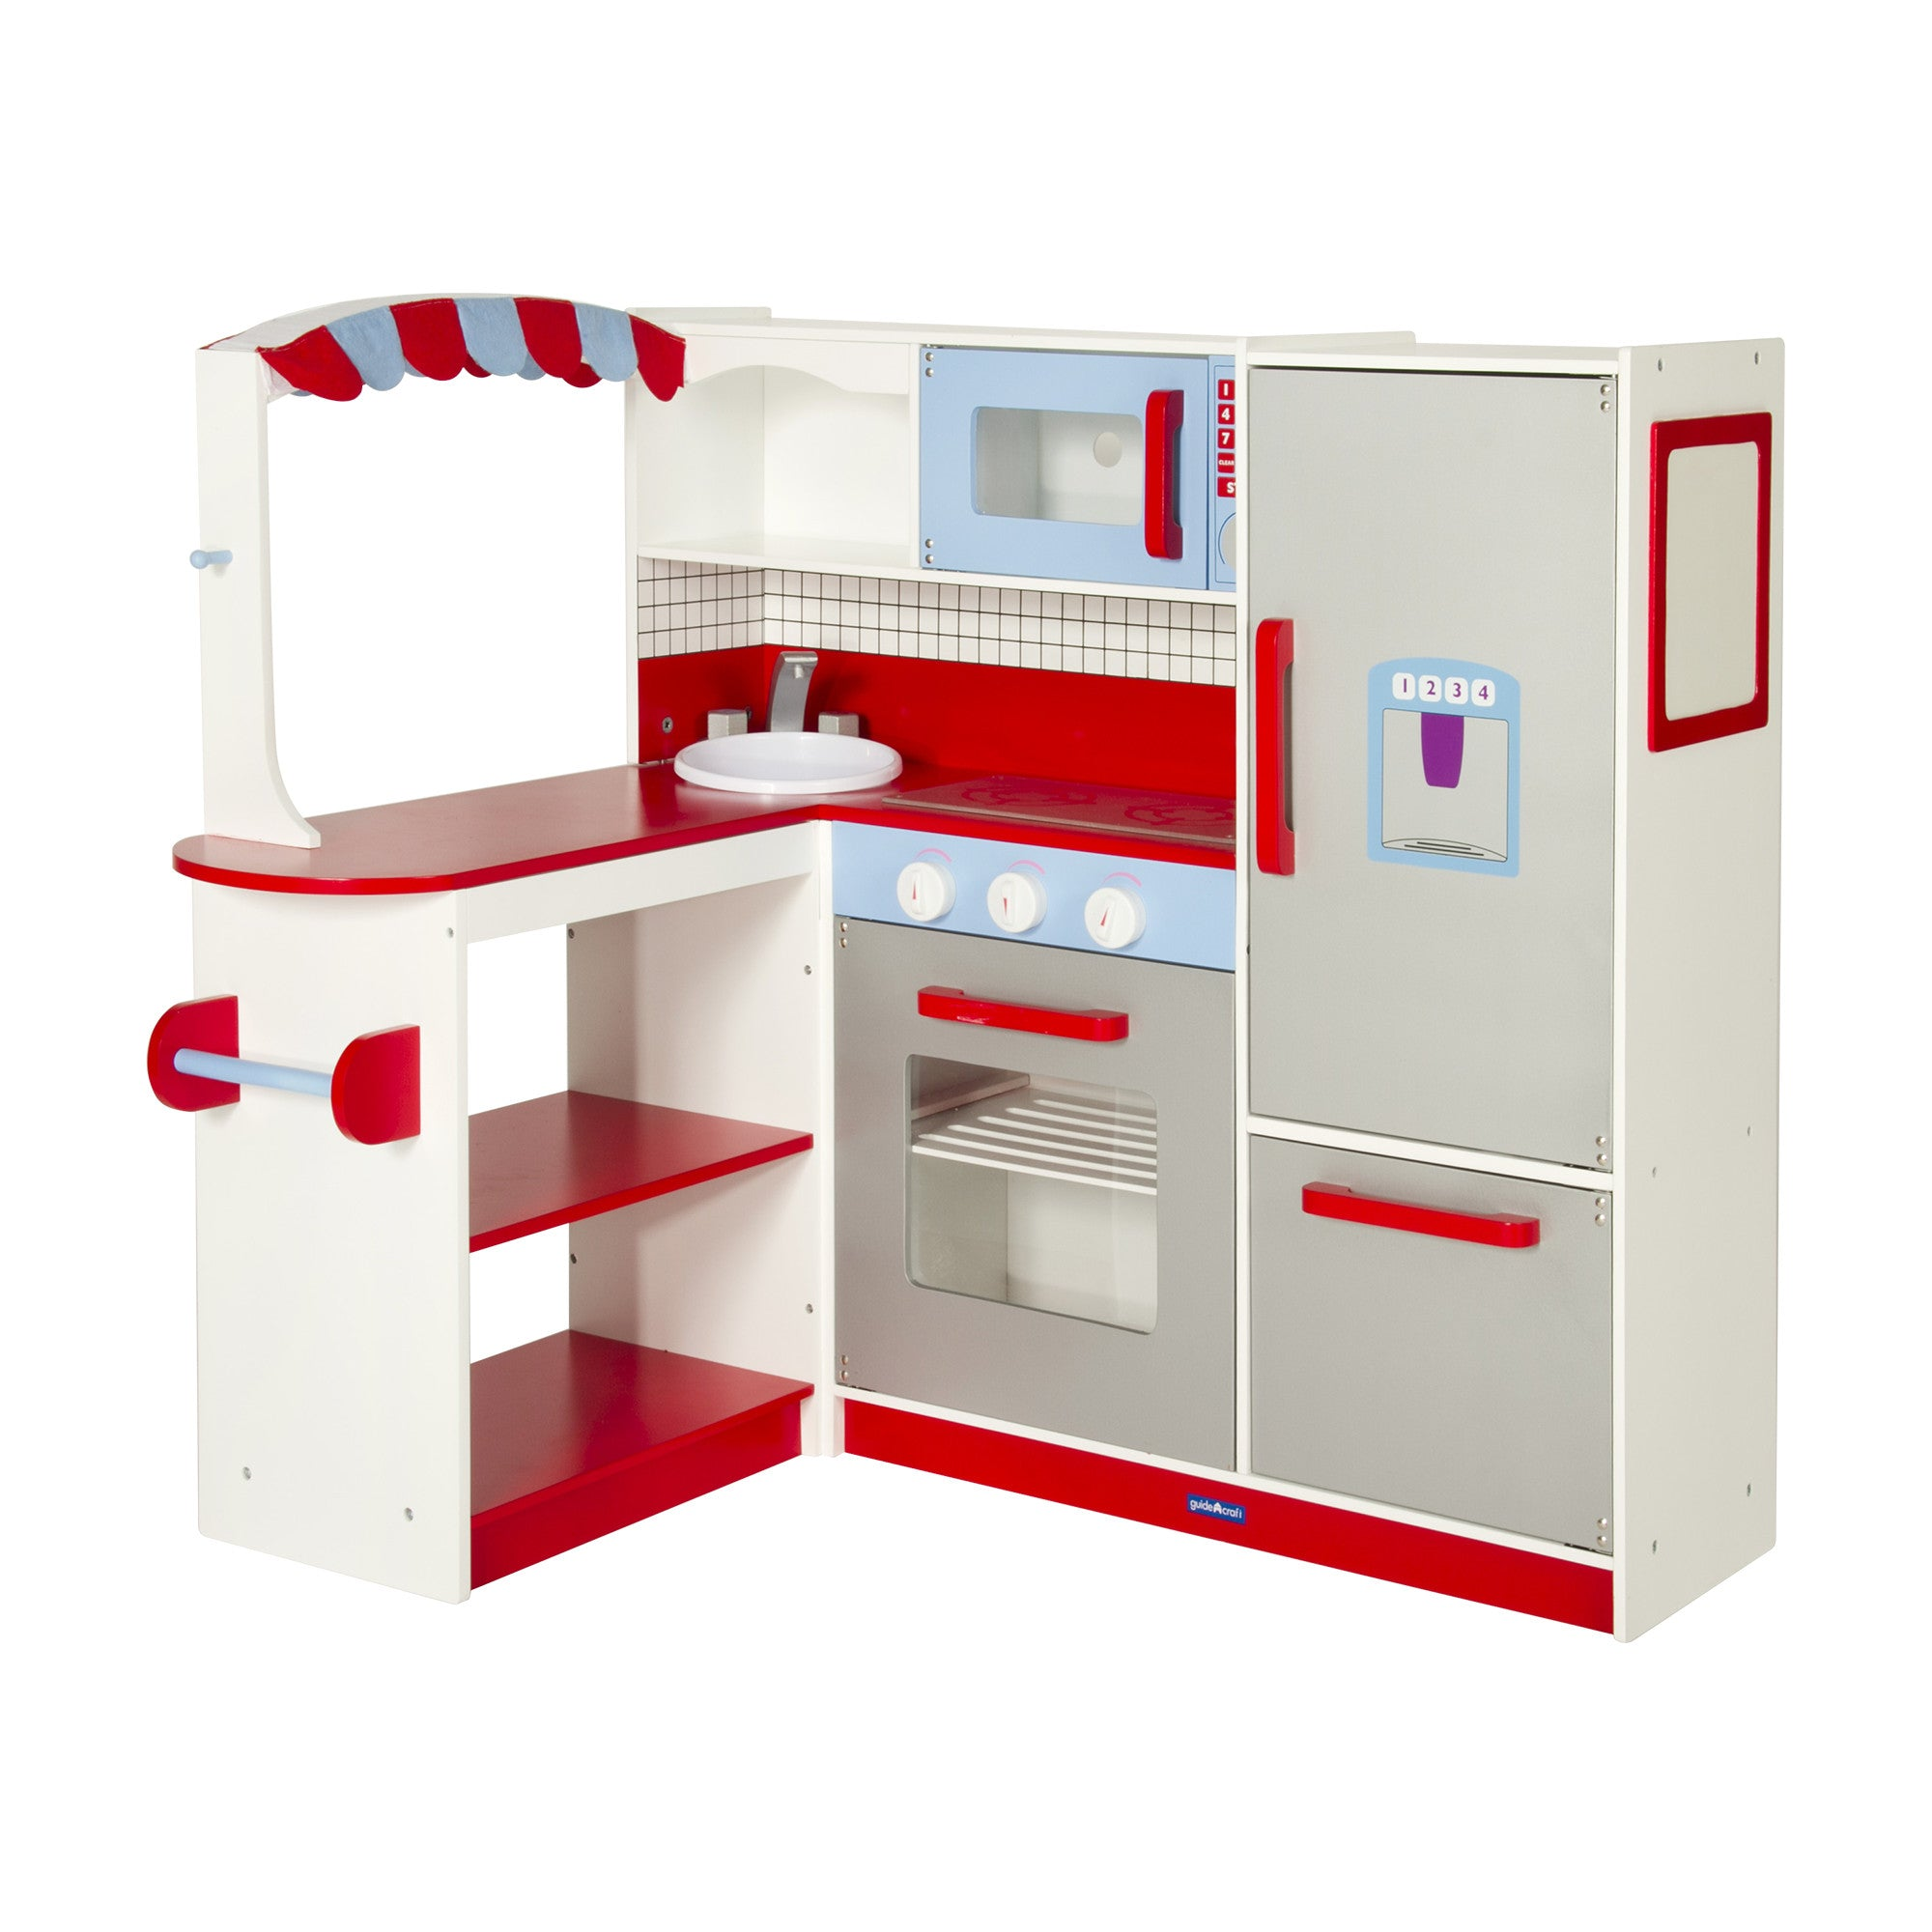 Guidecraft Cook's Nook Kitchen G97277